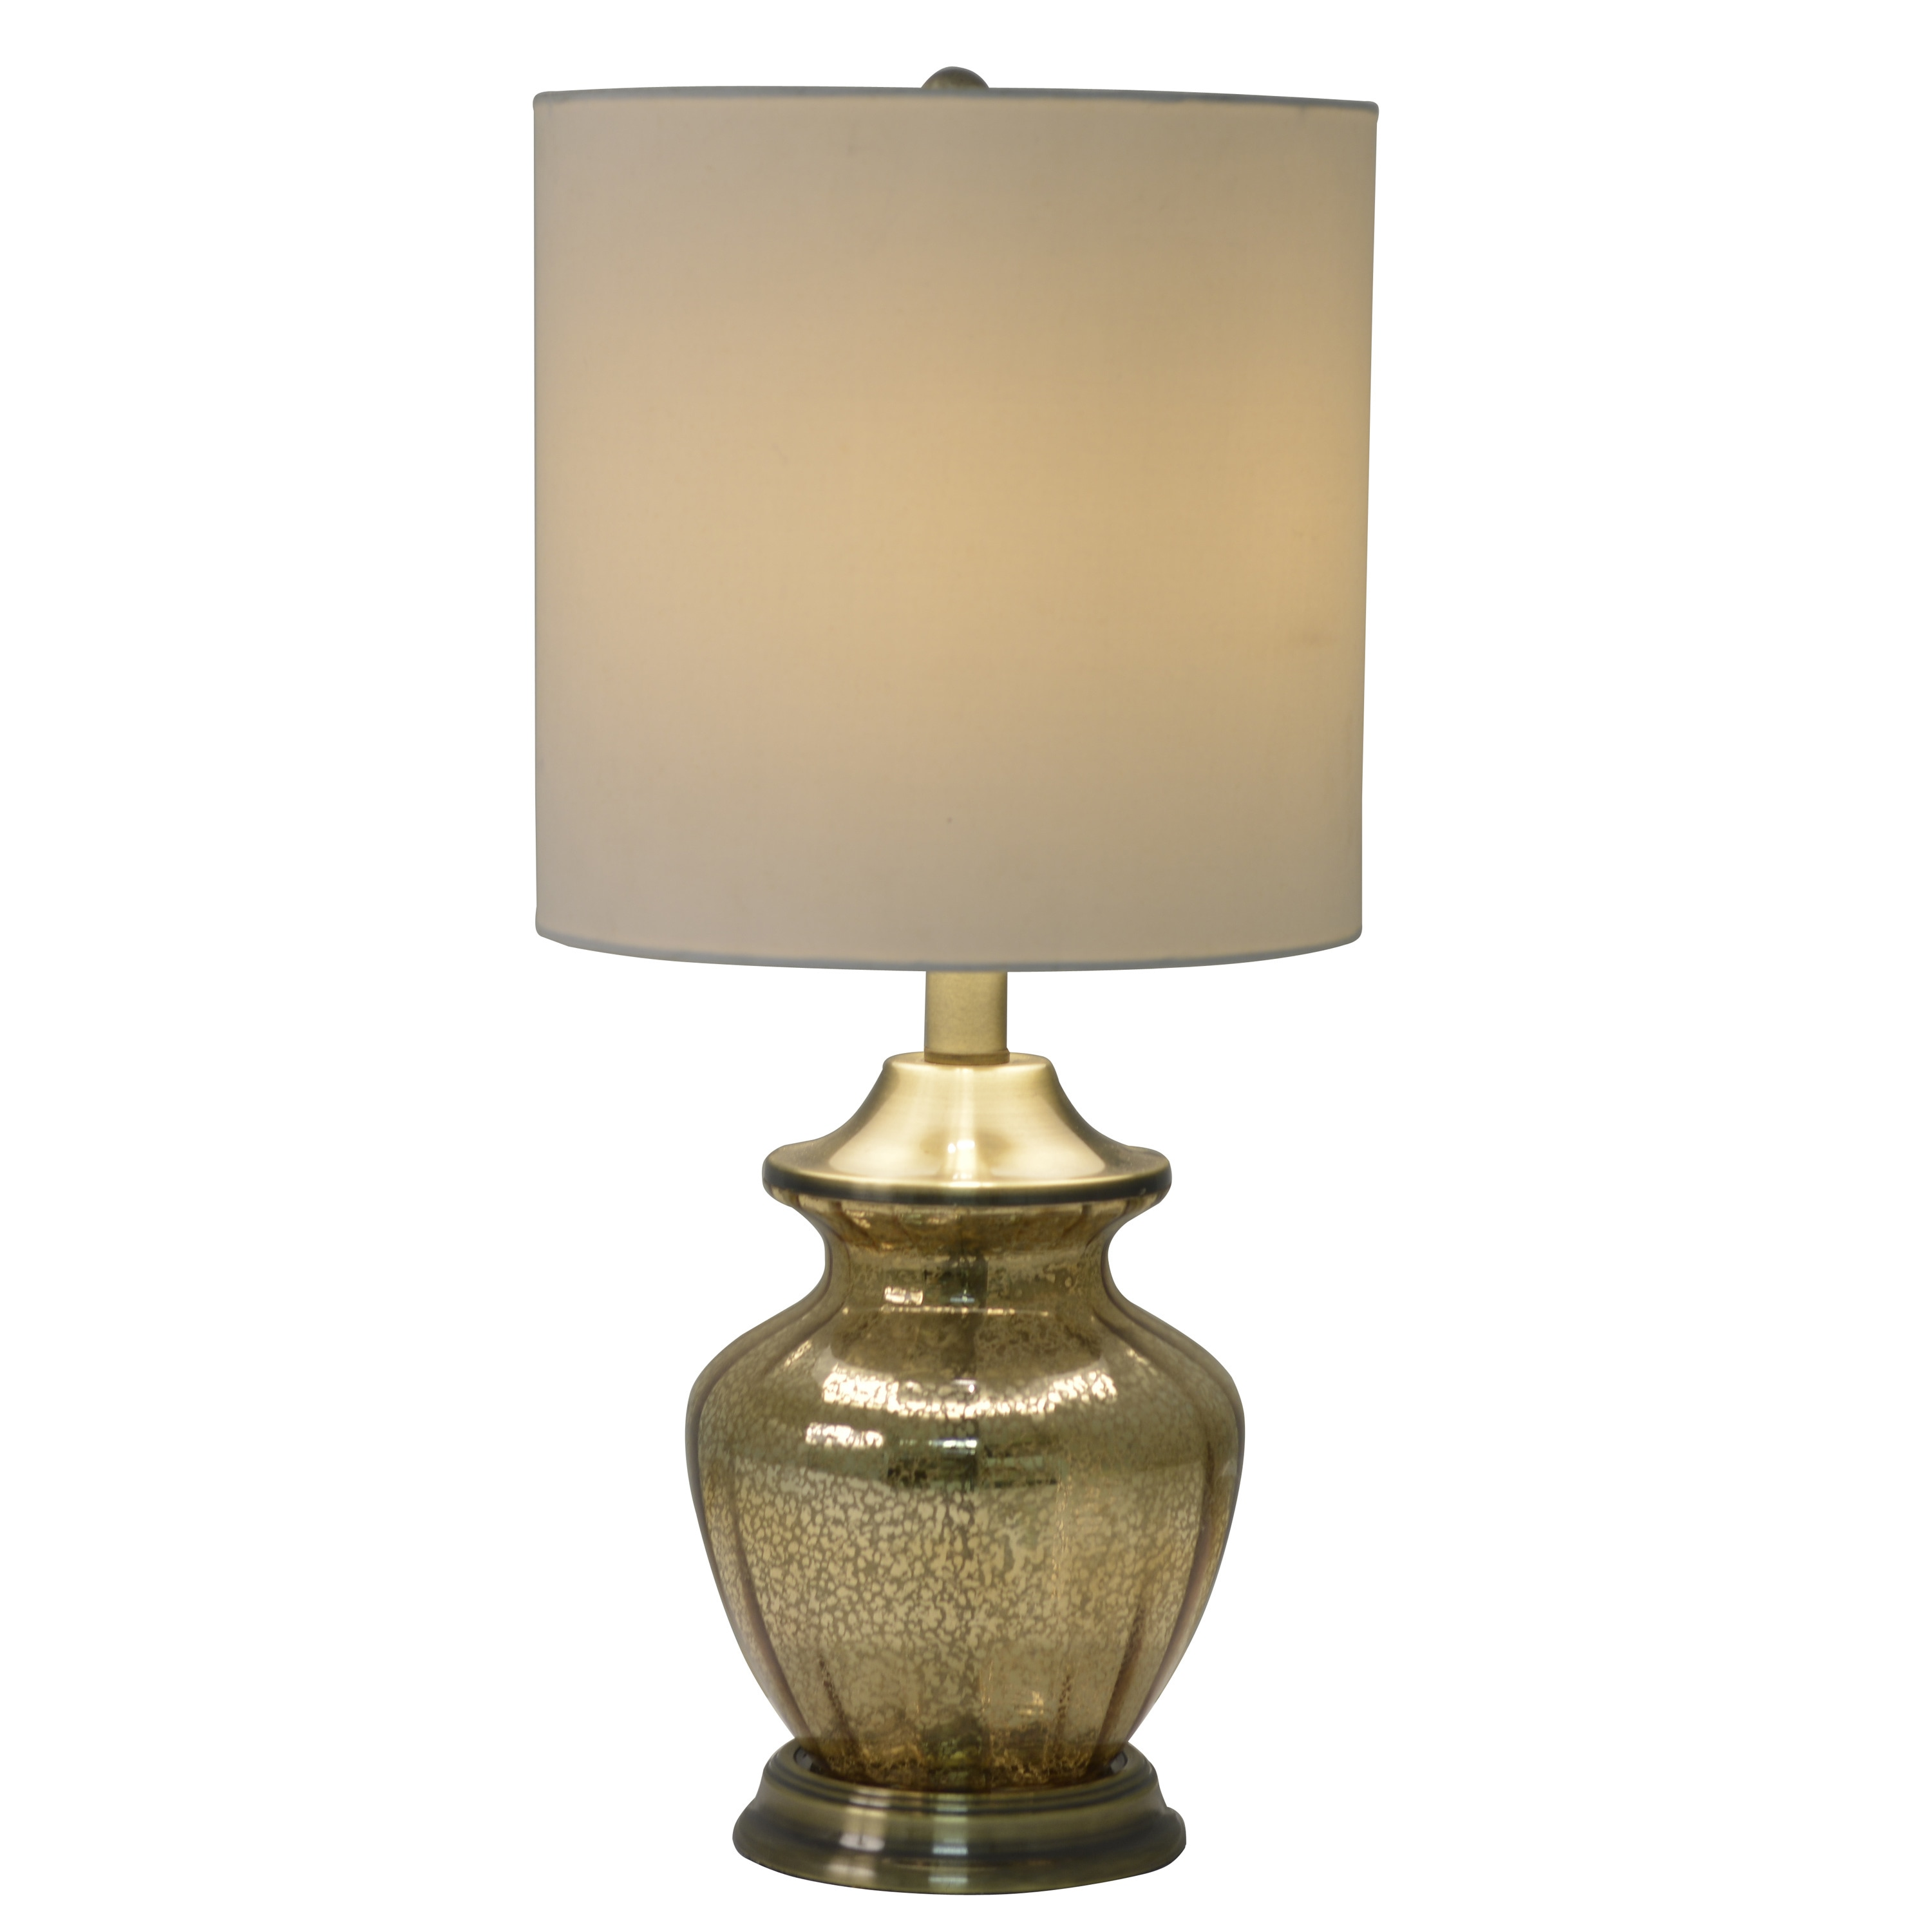 Shop Black Friday Deals On Decor Therapy Gold Tone Antique Brass Mercury Glass Table Lamp Overstock 12885178